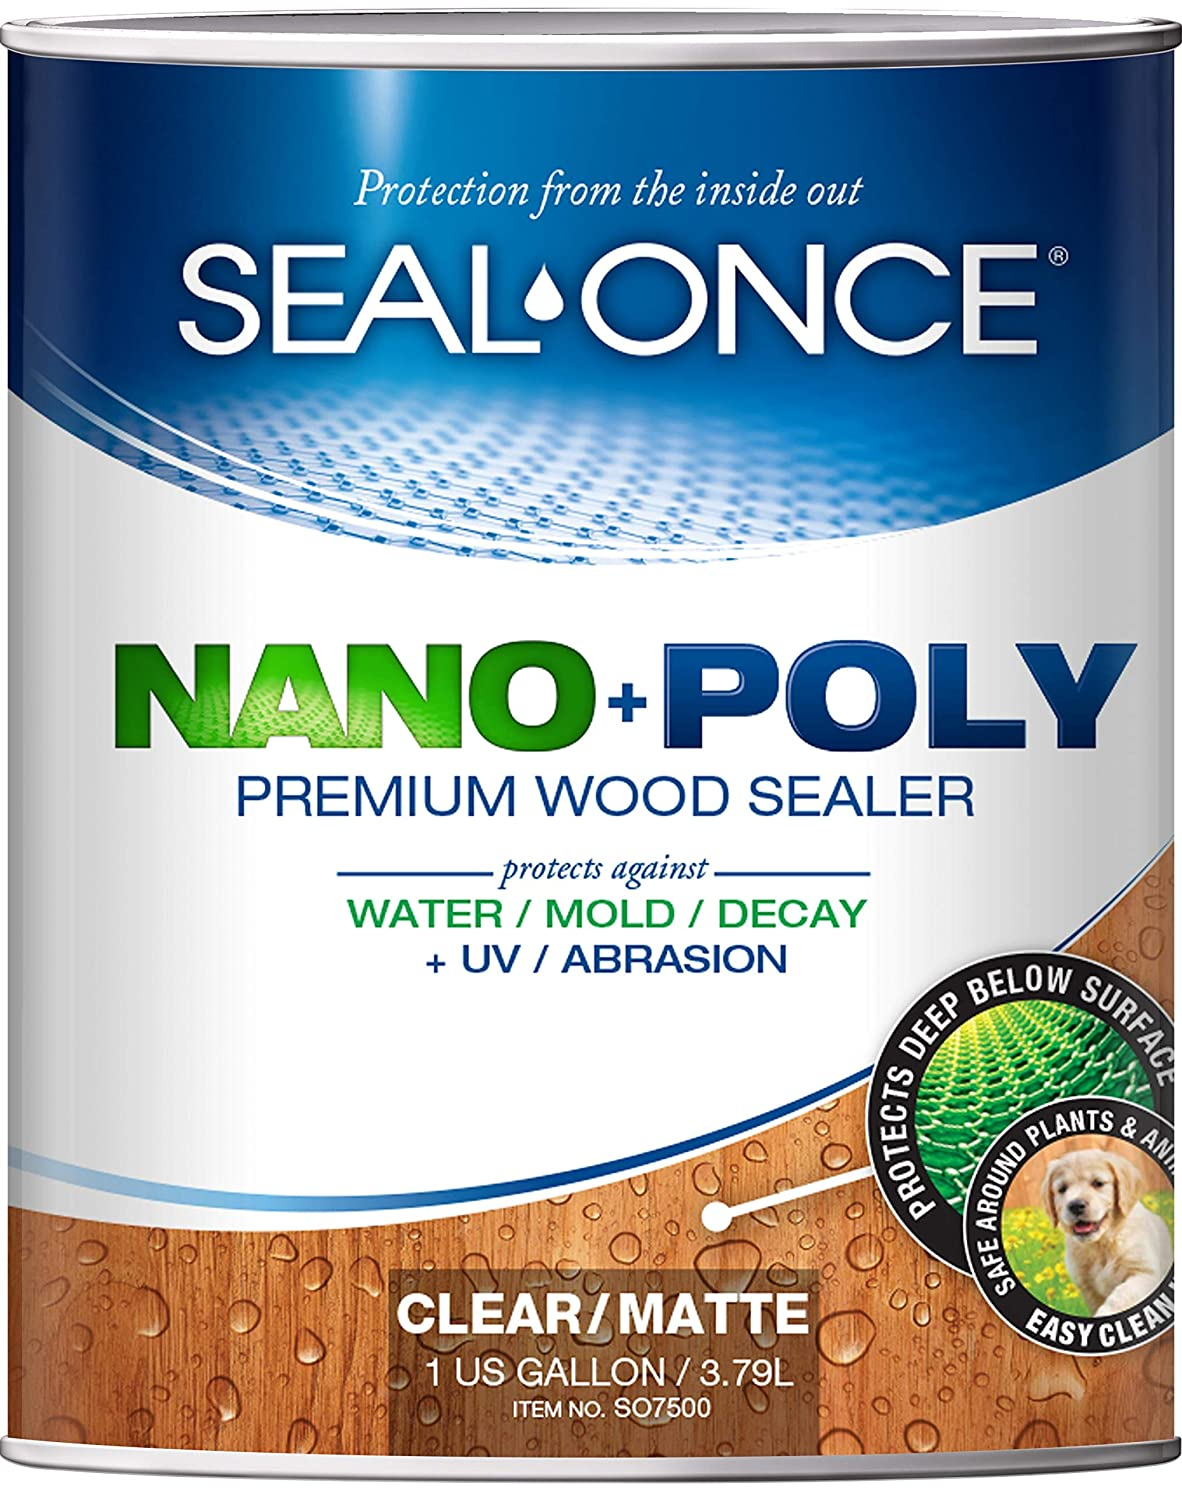 SEAL-ONCE Nano+Poly Penetrating Wood Sealer with Polyurethane - 1 Quart. Water-Based, Low-VOC, waterproofer & Stain for Decks, Fences & Log Homes.